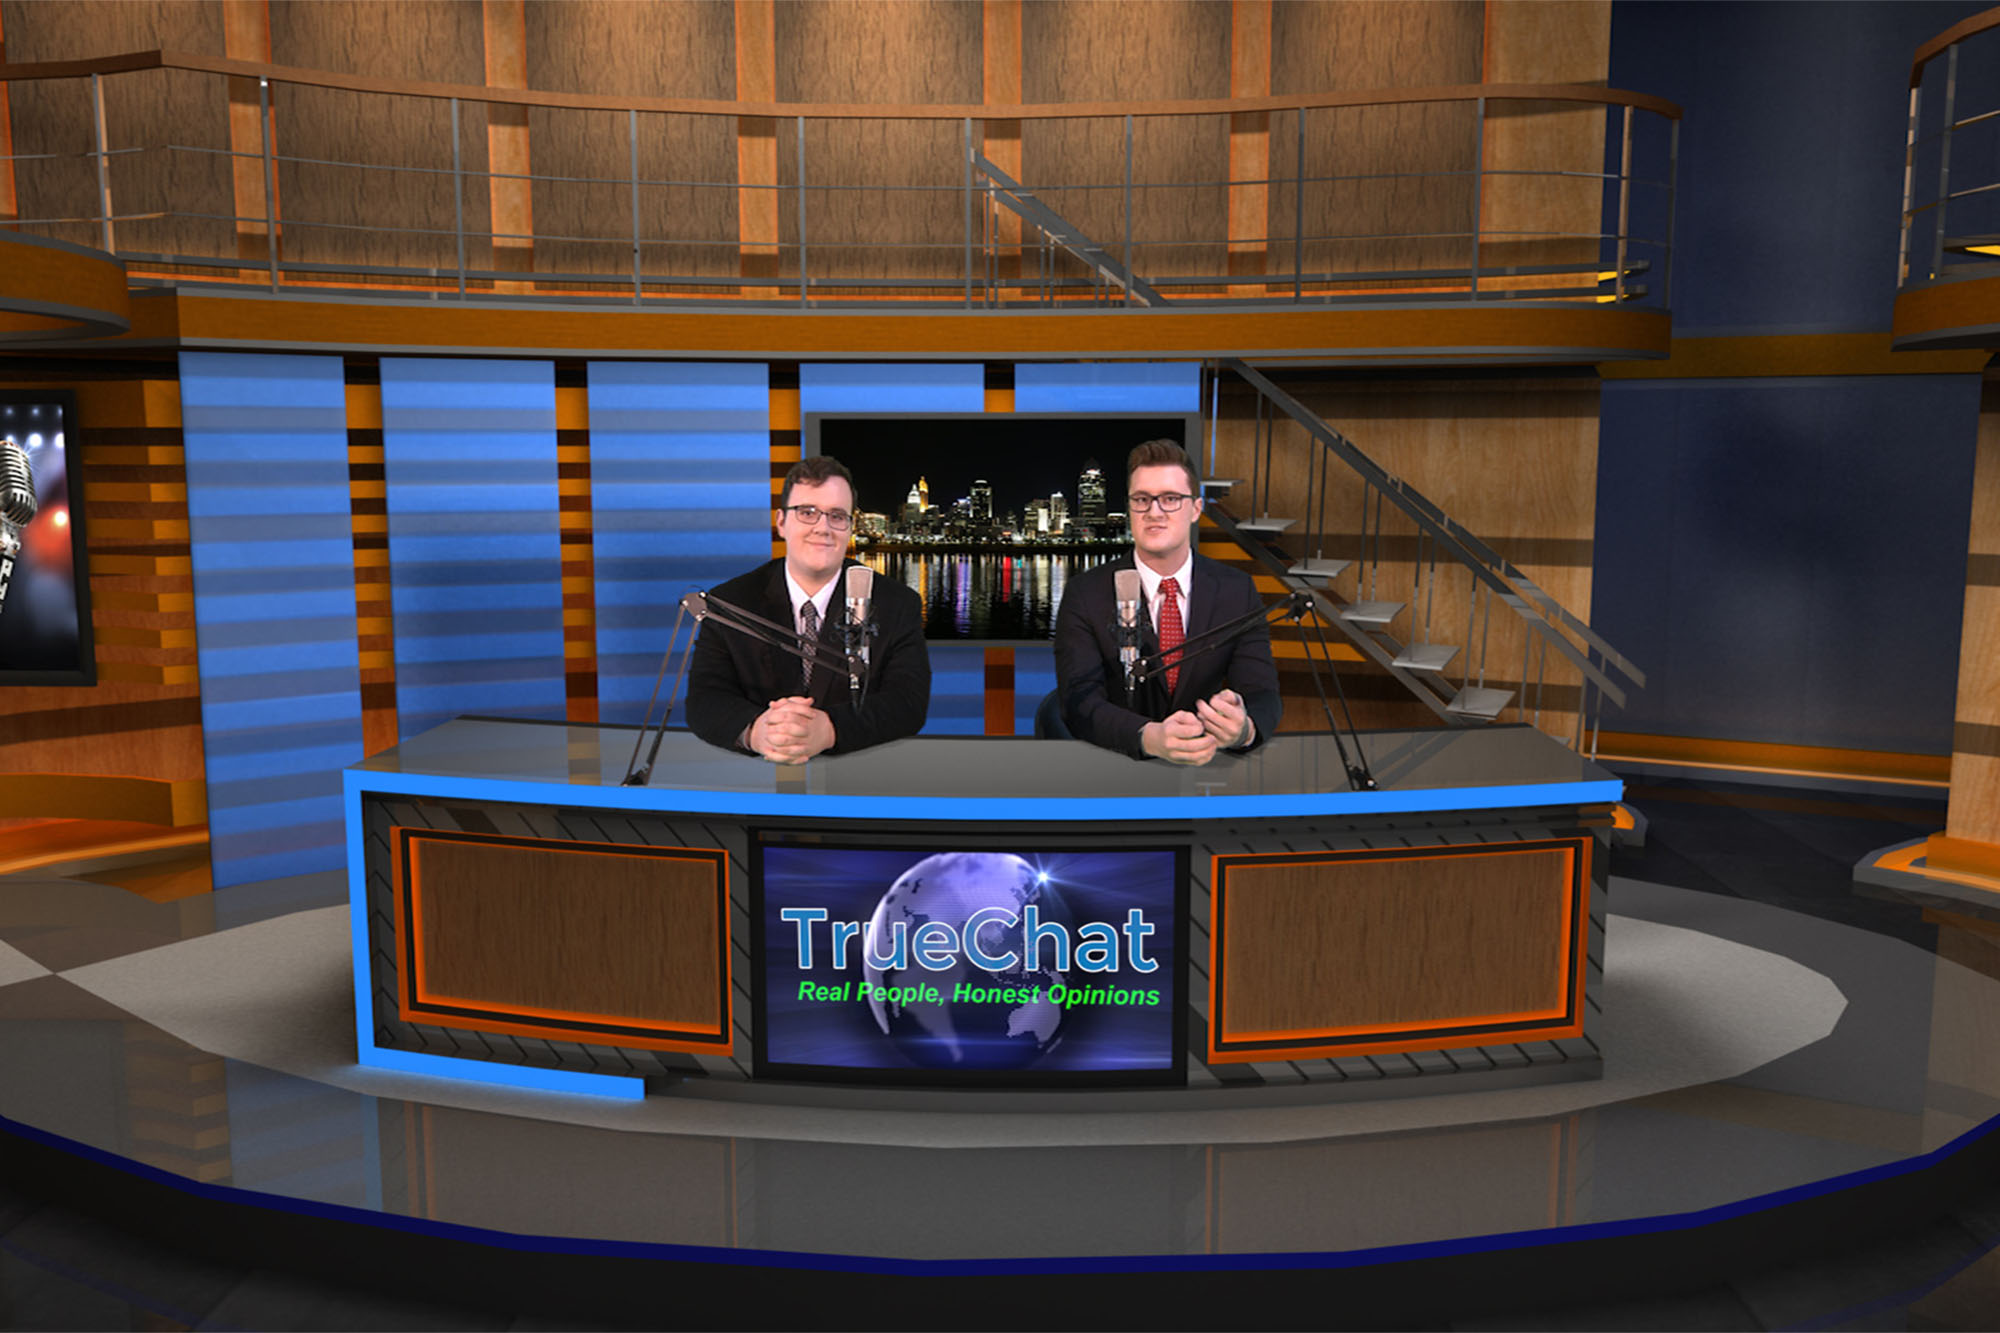 Justin T. Weller, right, on a broadcast with Camden Pierce, on left, at TrueChat.